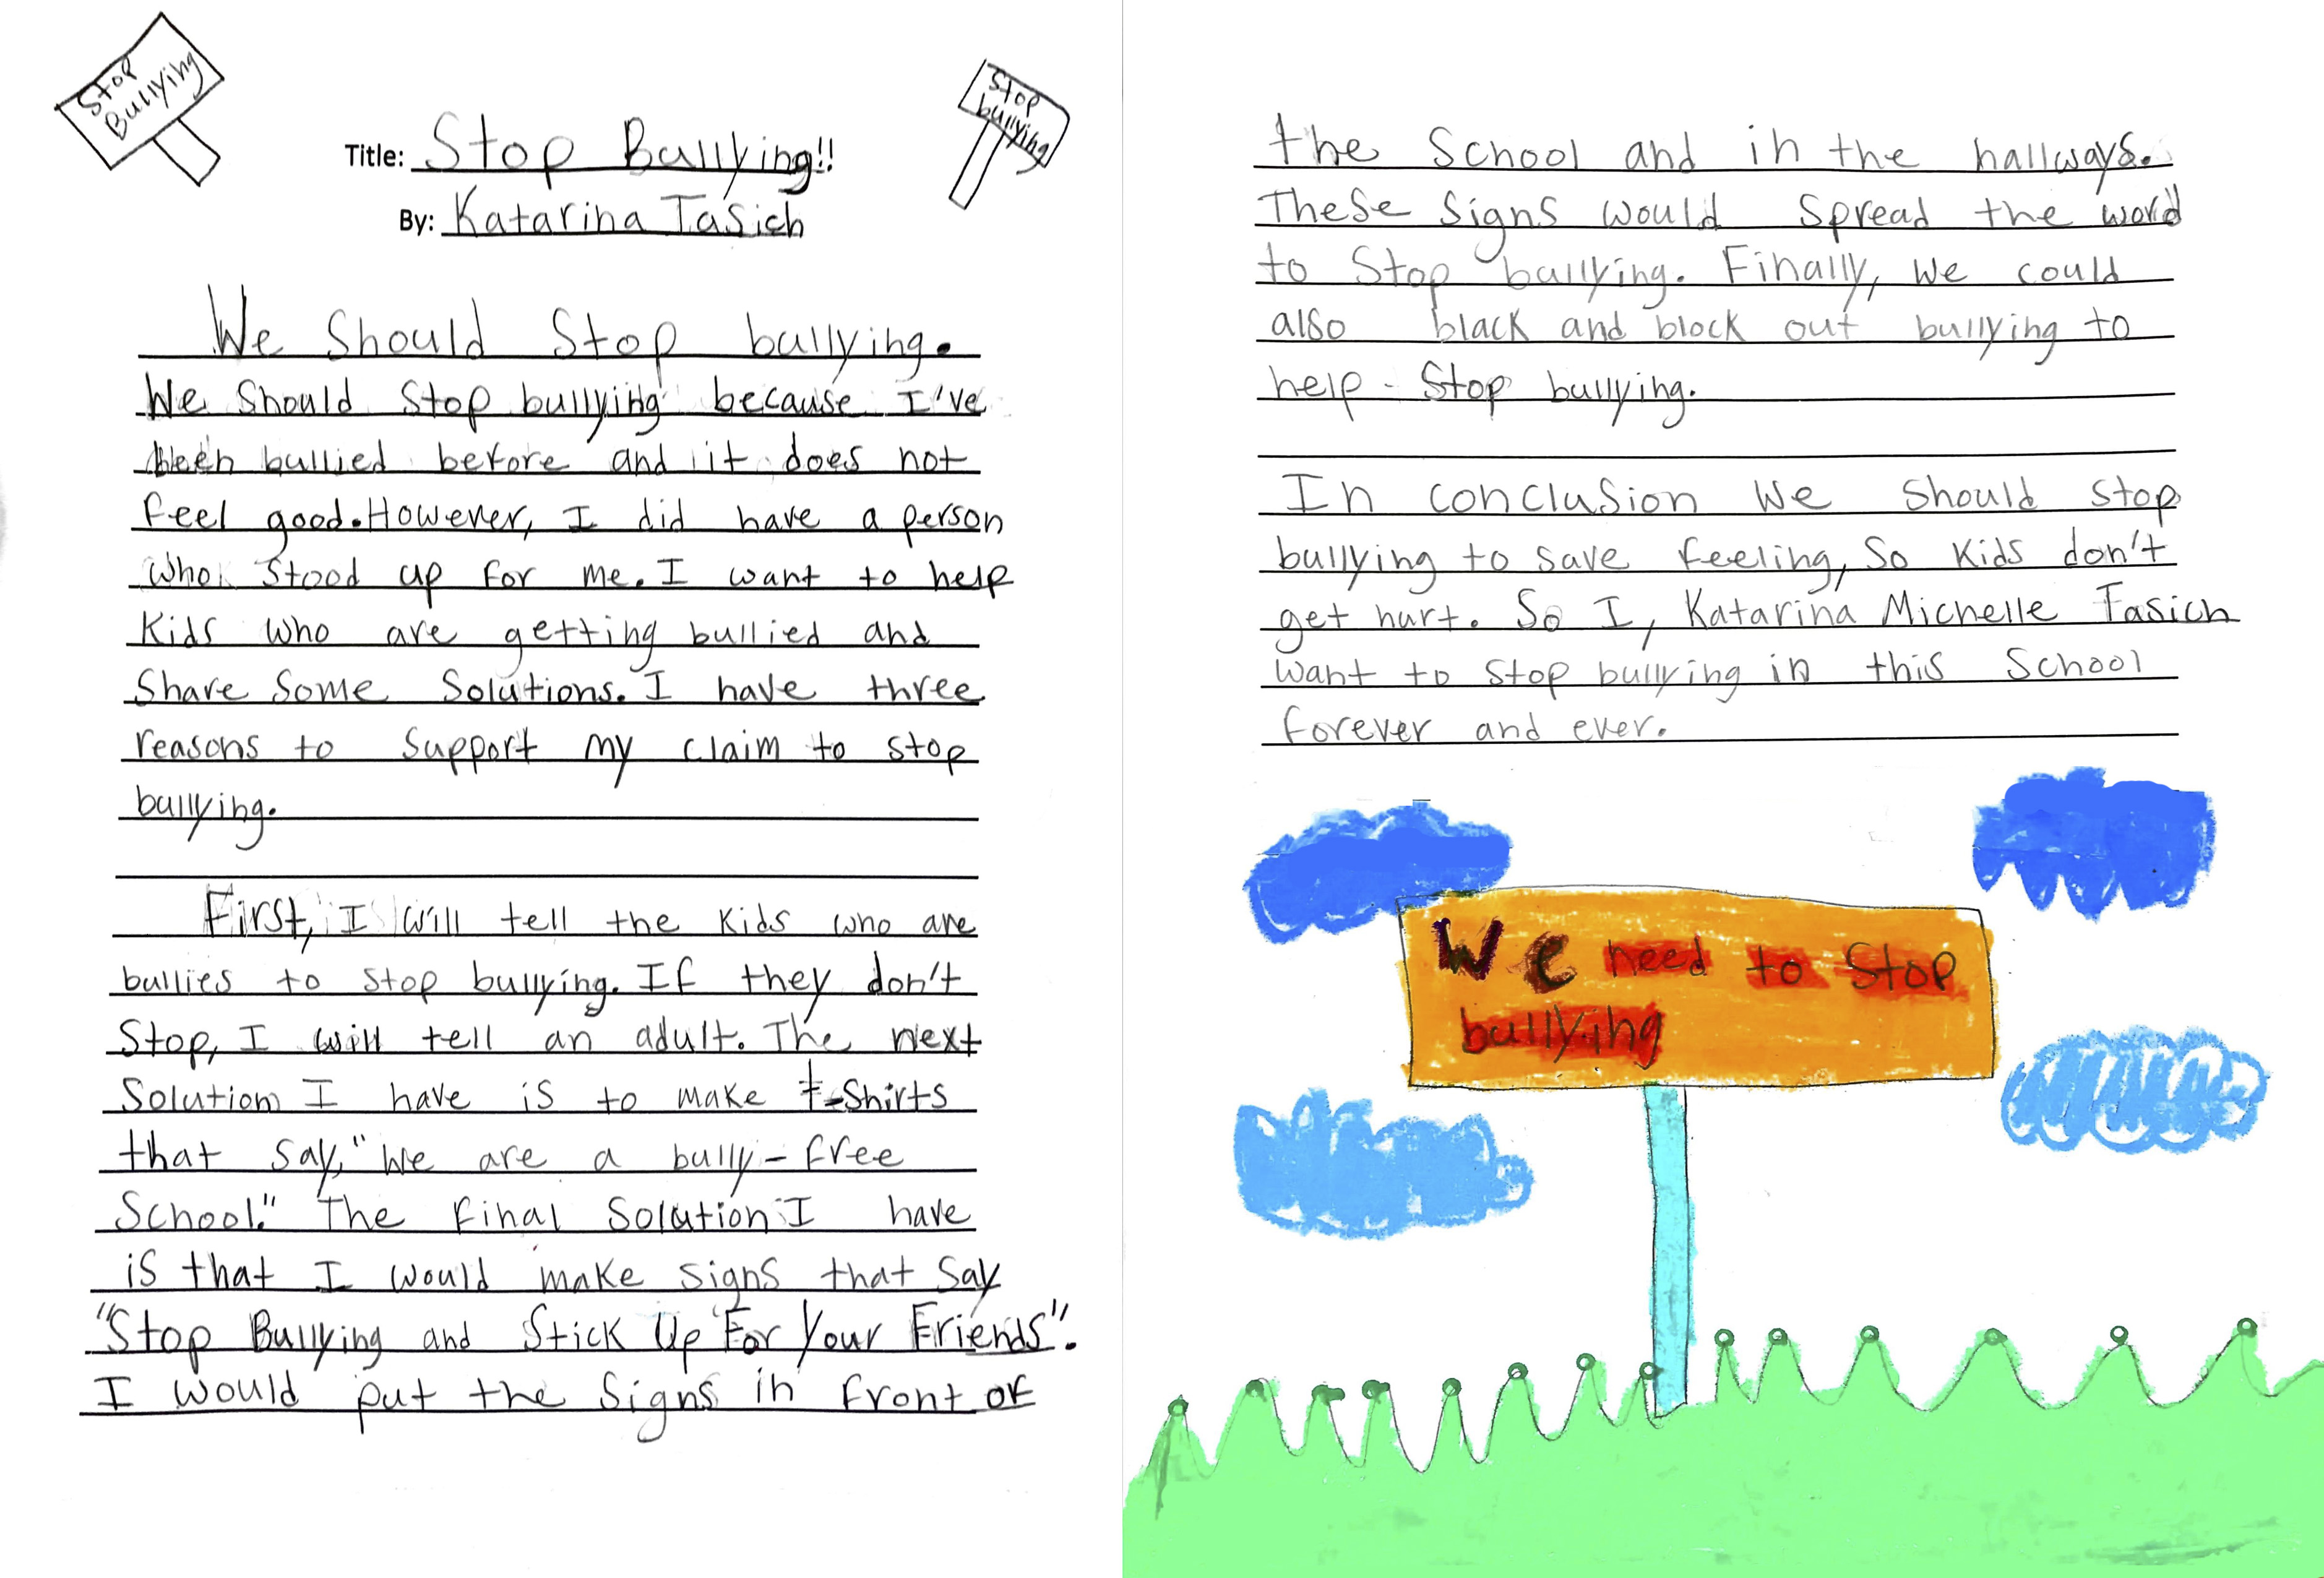 apology essays Free essay: apology i apologize for my inappropriate behavior on (what ever date you want here) in the cafeteria it was very rude for me to laugh while you.